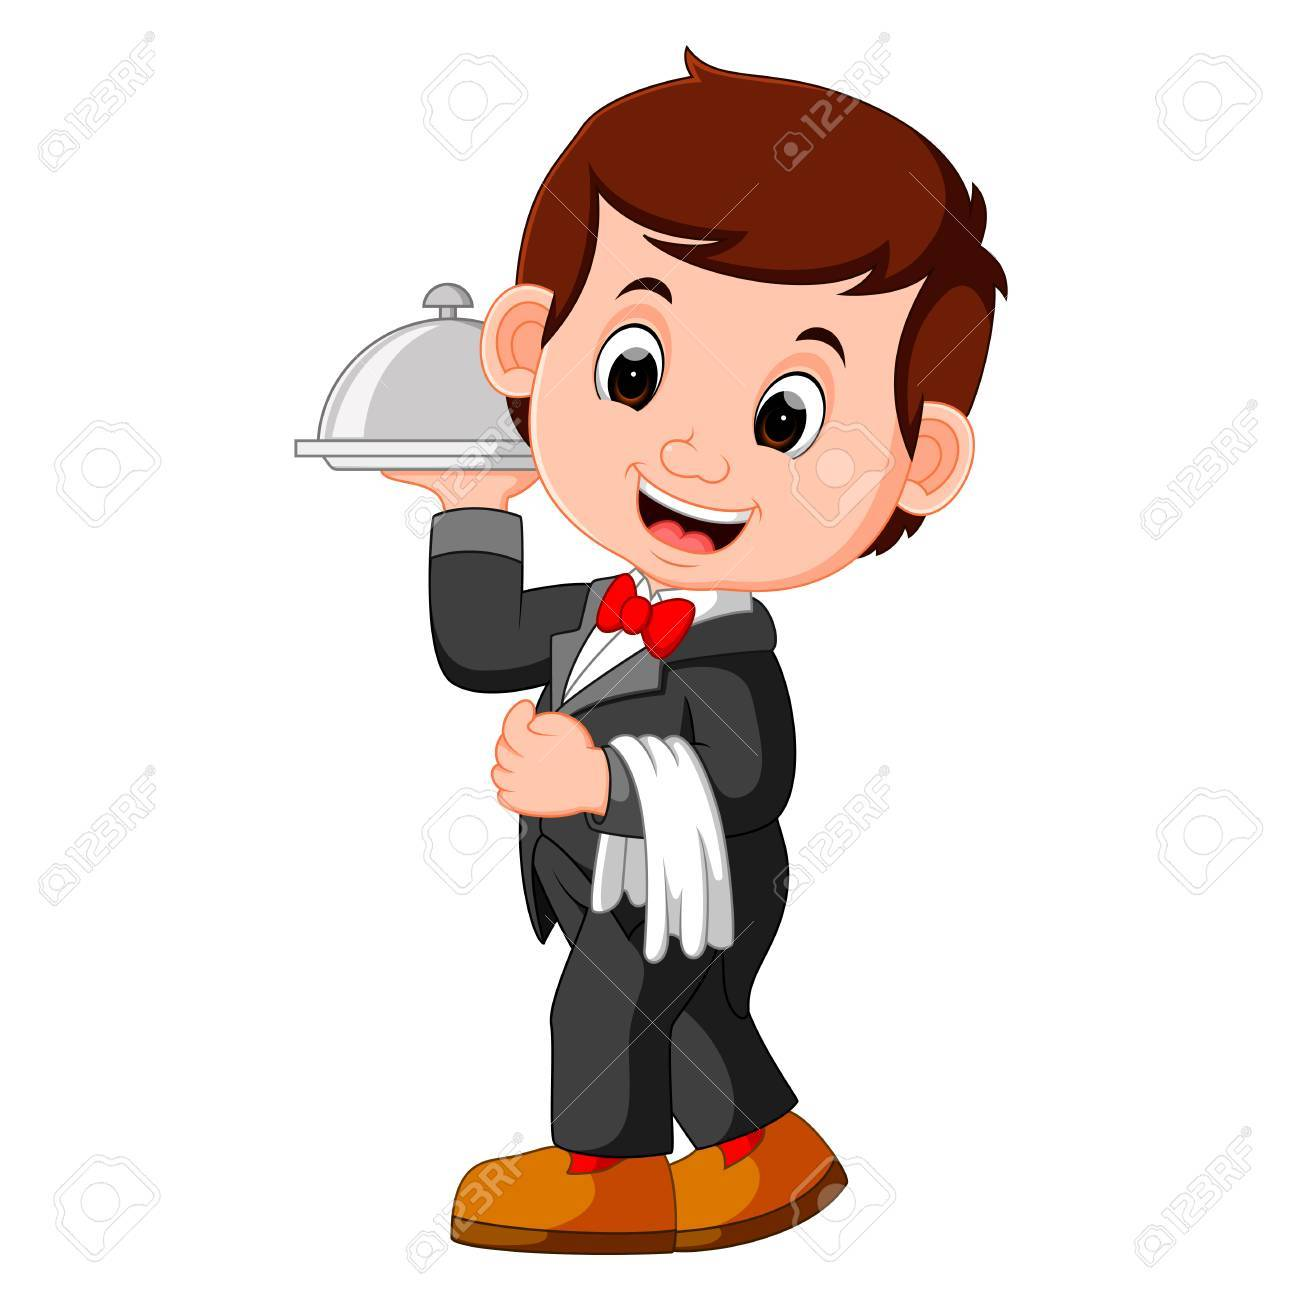 Clipart waiter 3 » Clipart Station.